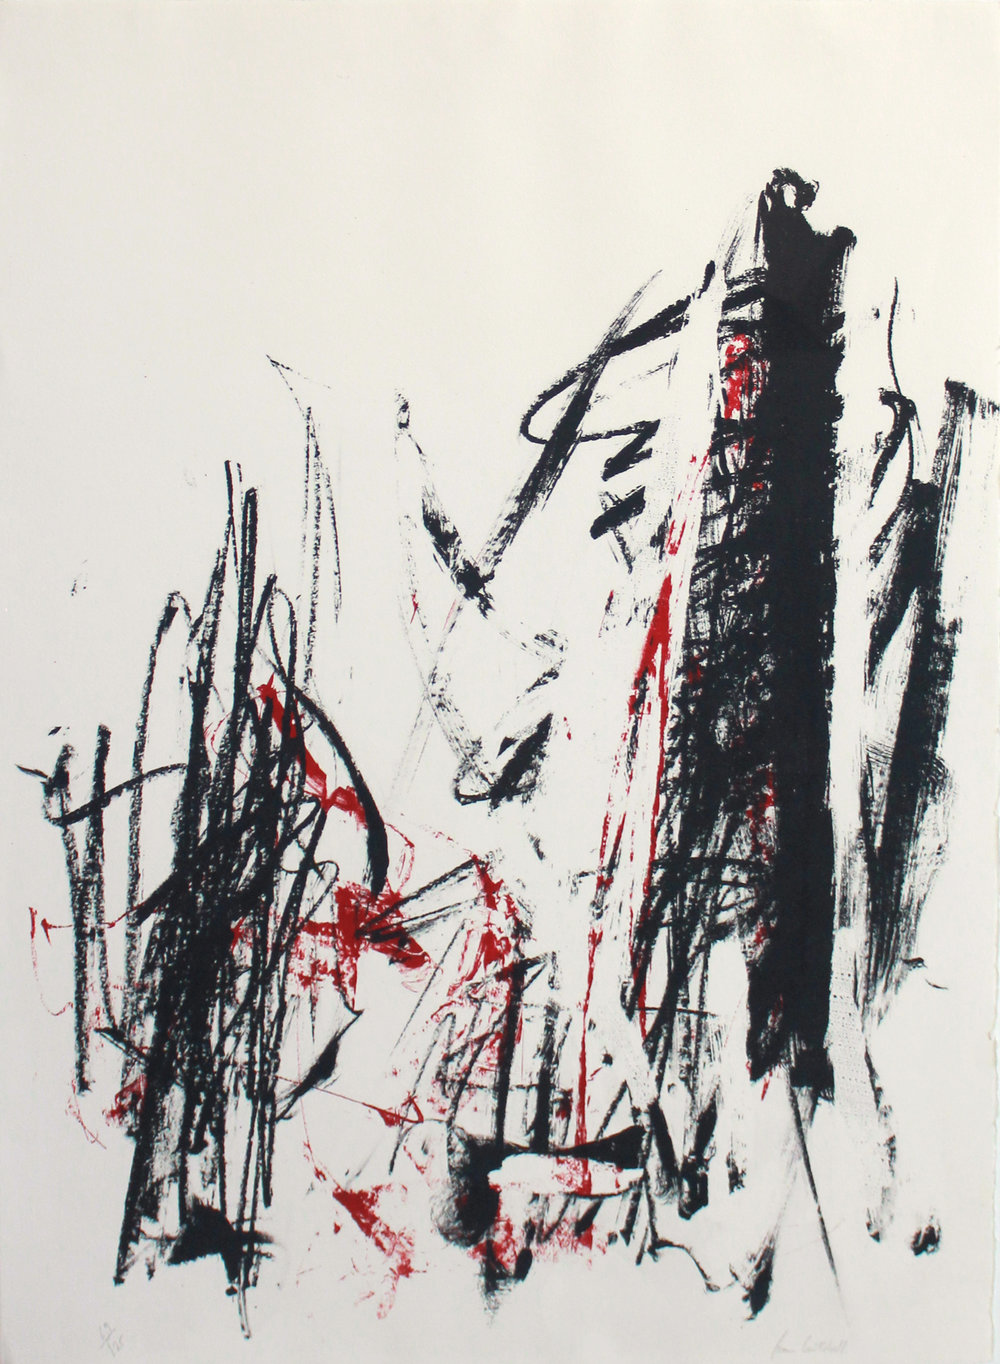 Joan Mitchell   Arbres (Trees) , 1991 Lithograph From the numbered edition of 125 Signed and numbered in pencil on recto Sheet: 30 x 22 inches; Framed: 38.5 x 30.5 inches